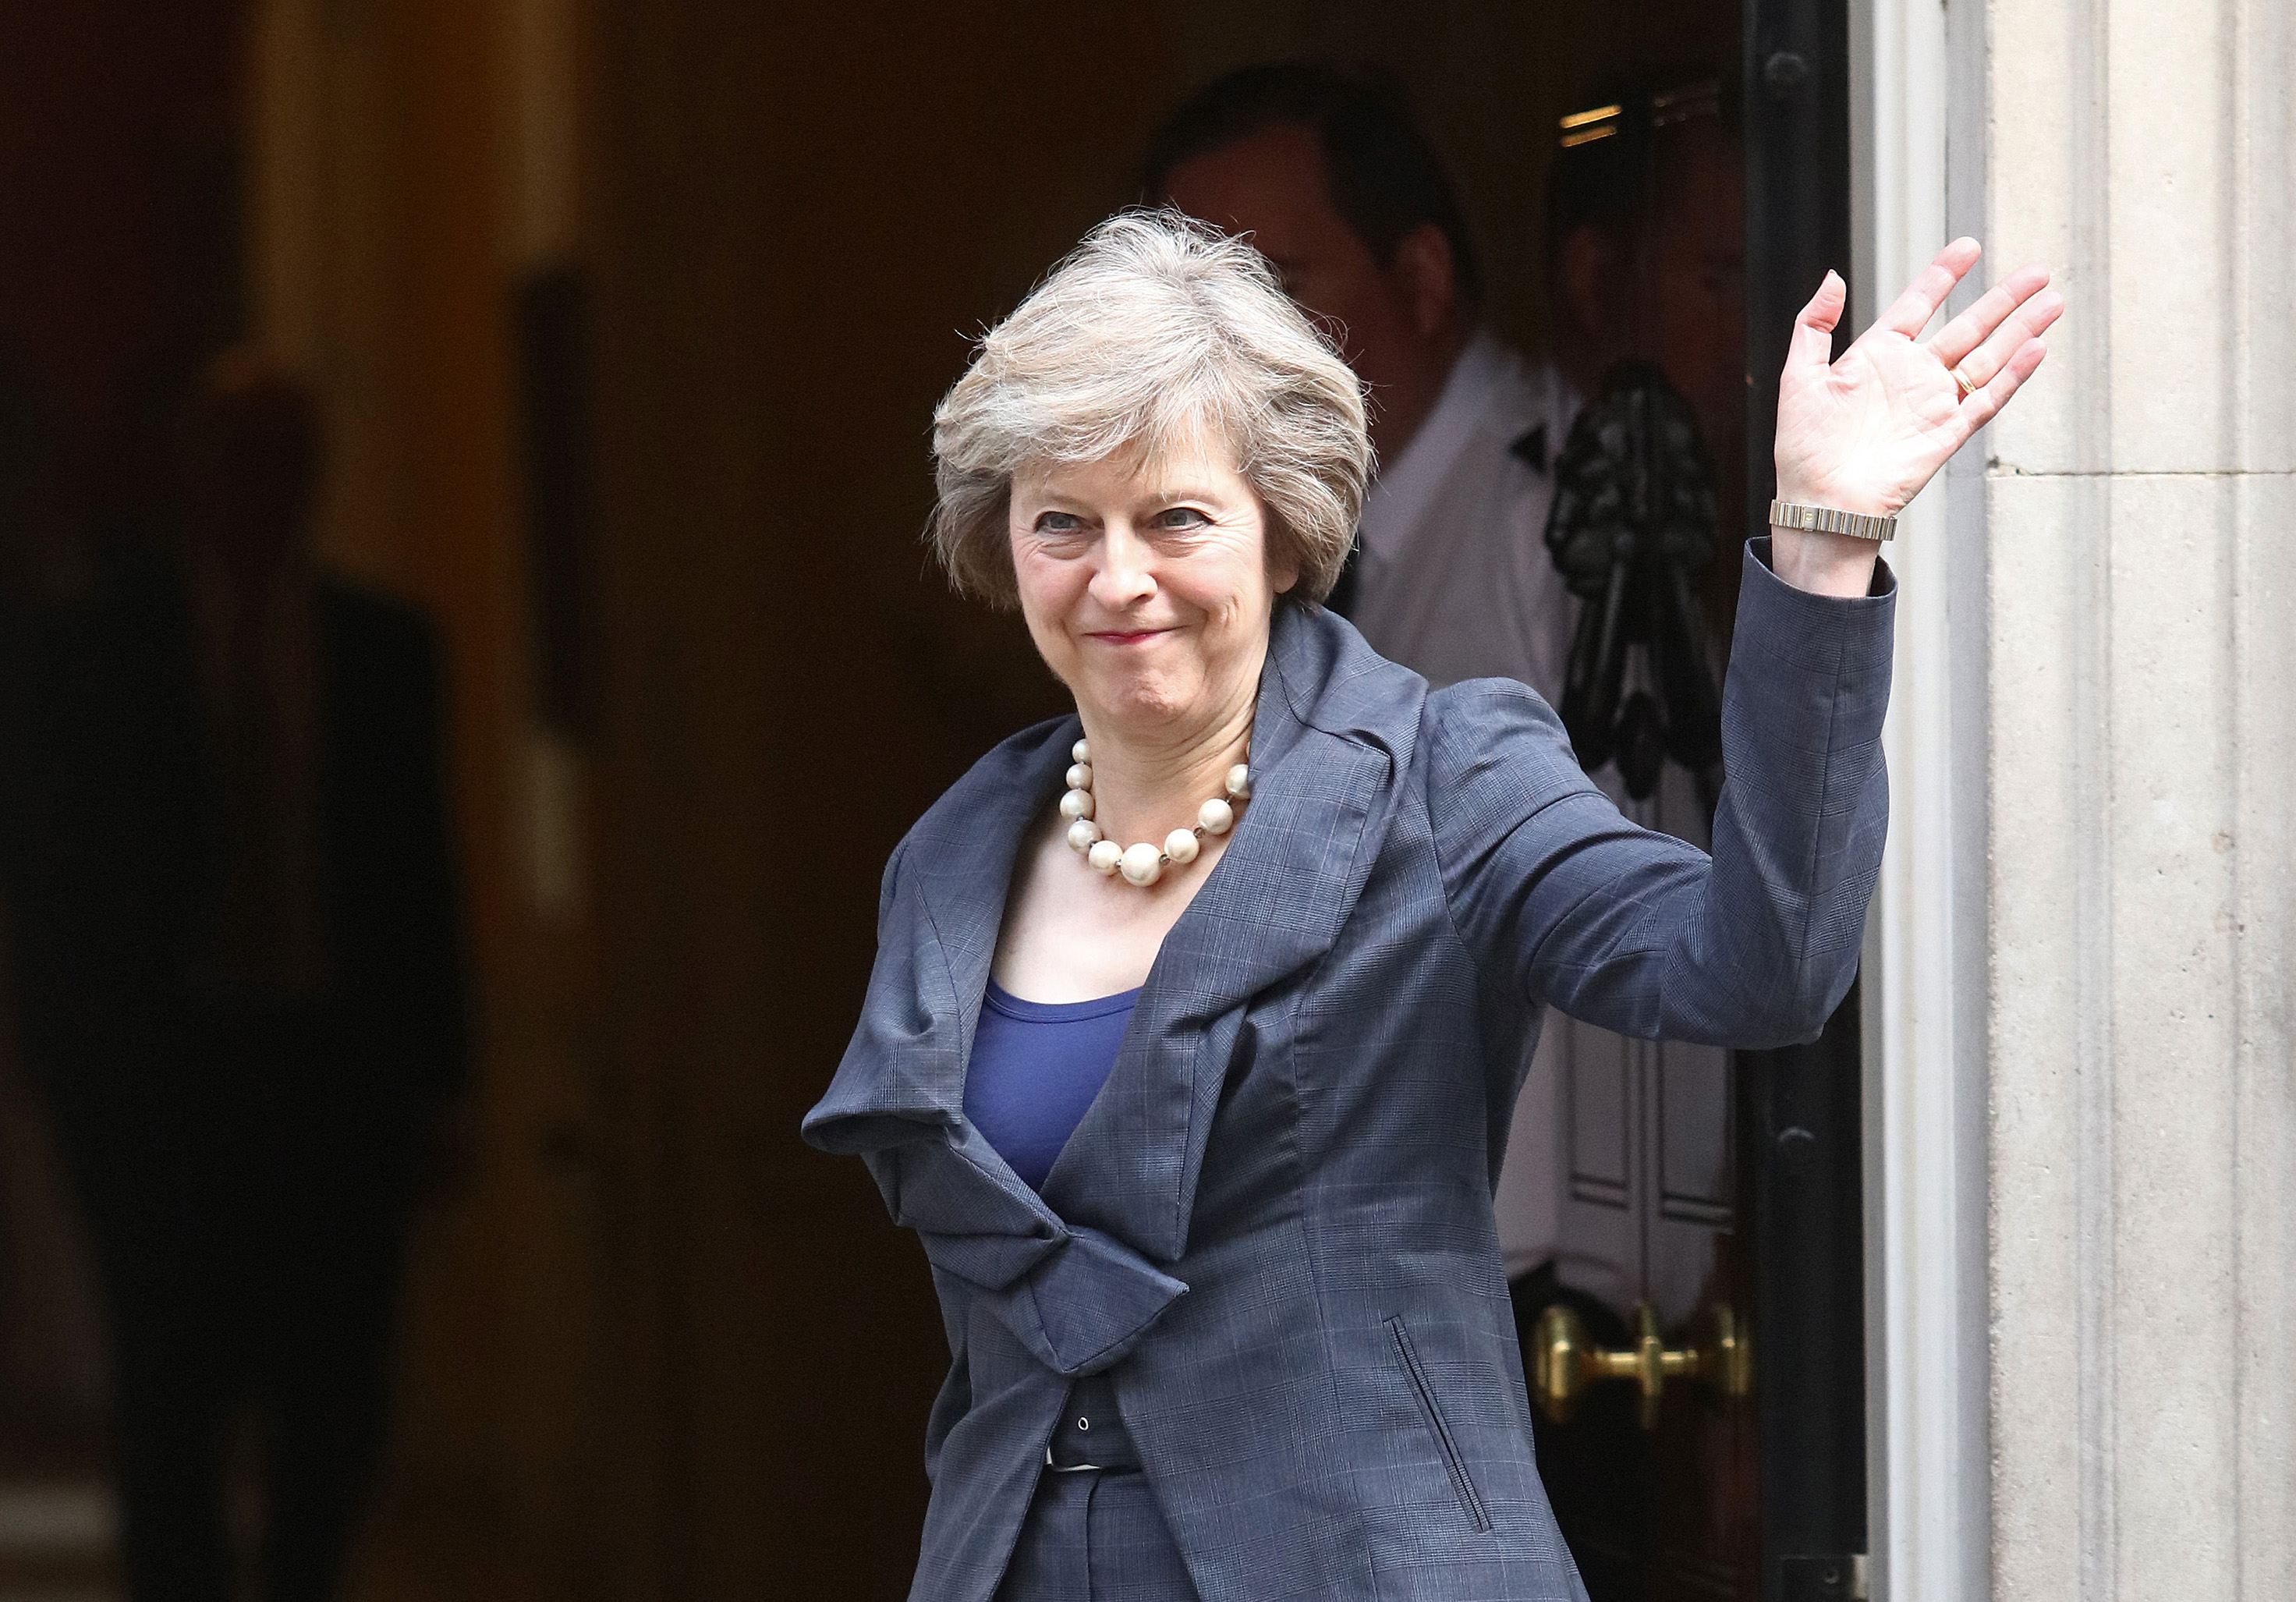 Theresa May, U.K. home secretary, waves as she arrives for a cabinet meeting in 10 Downing Street in London, on July 12, 2016.